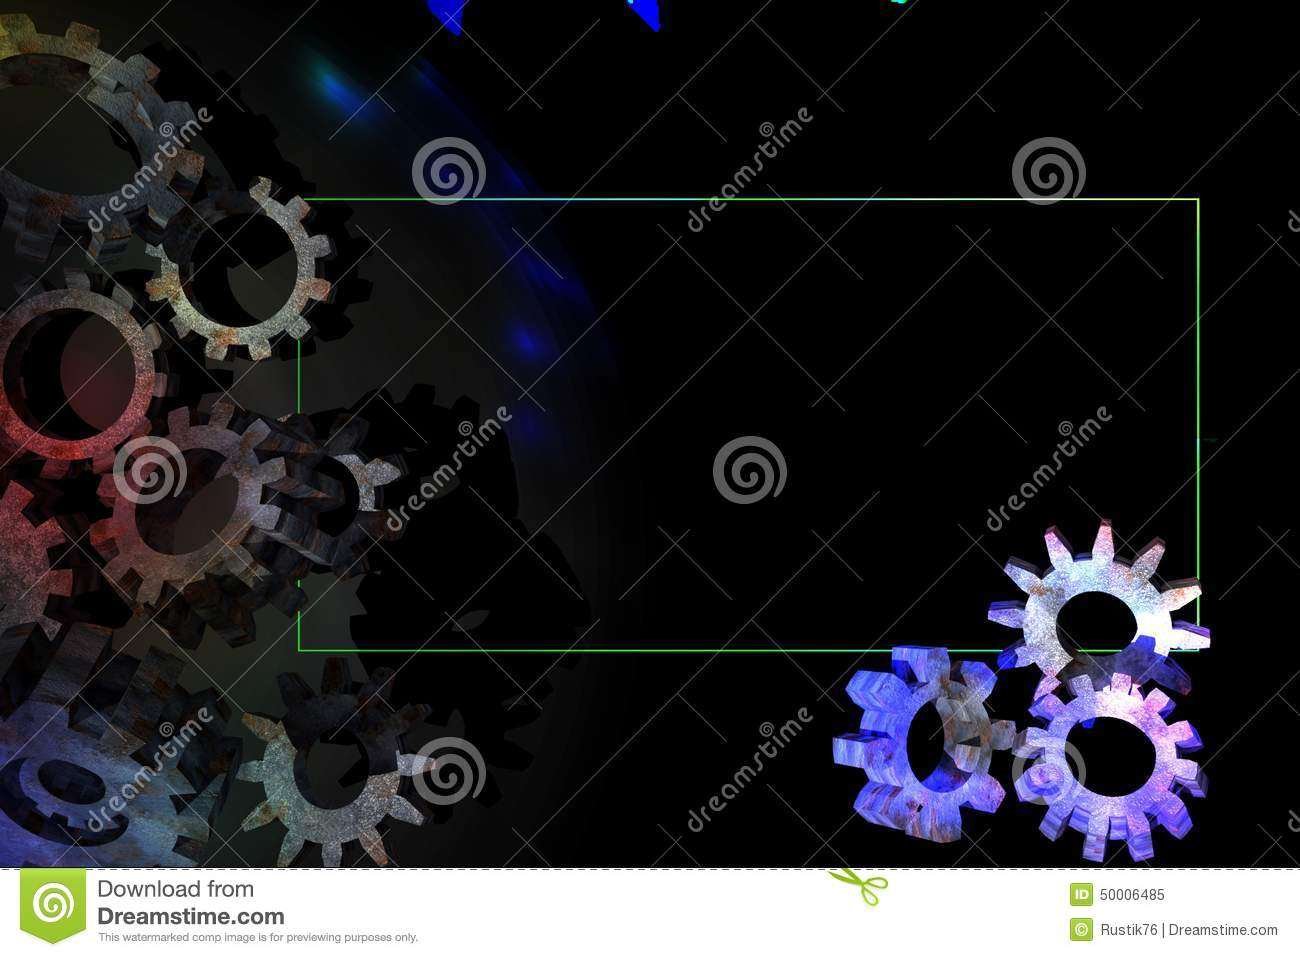 3D Gear On A Black Background With A Green Border. Stock